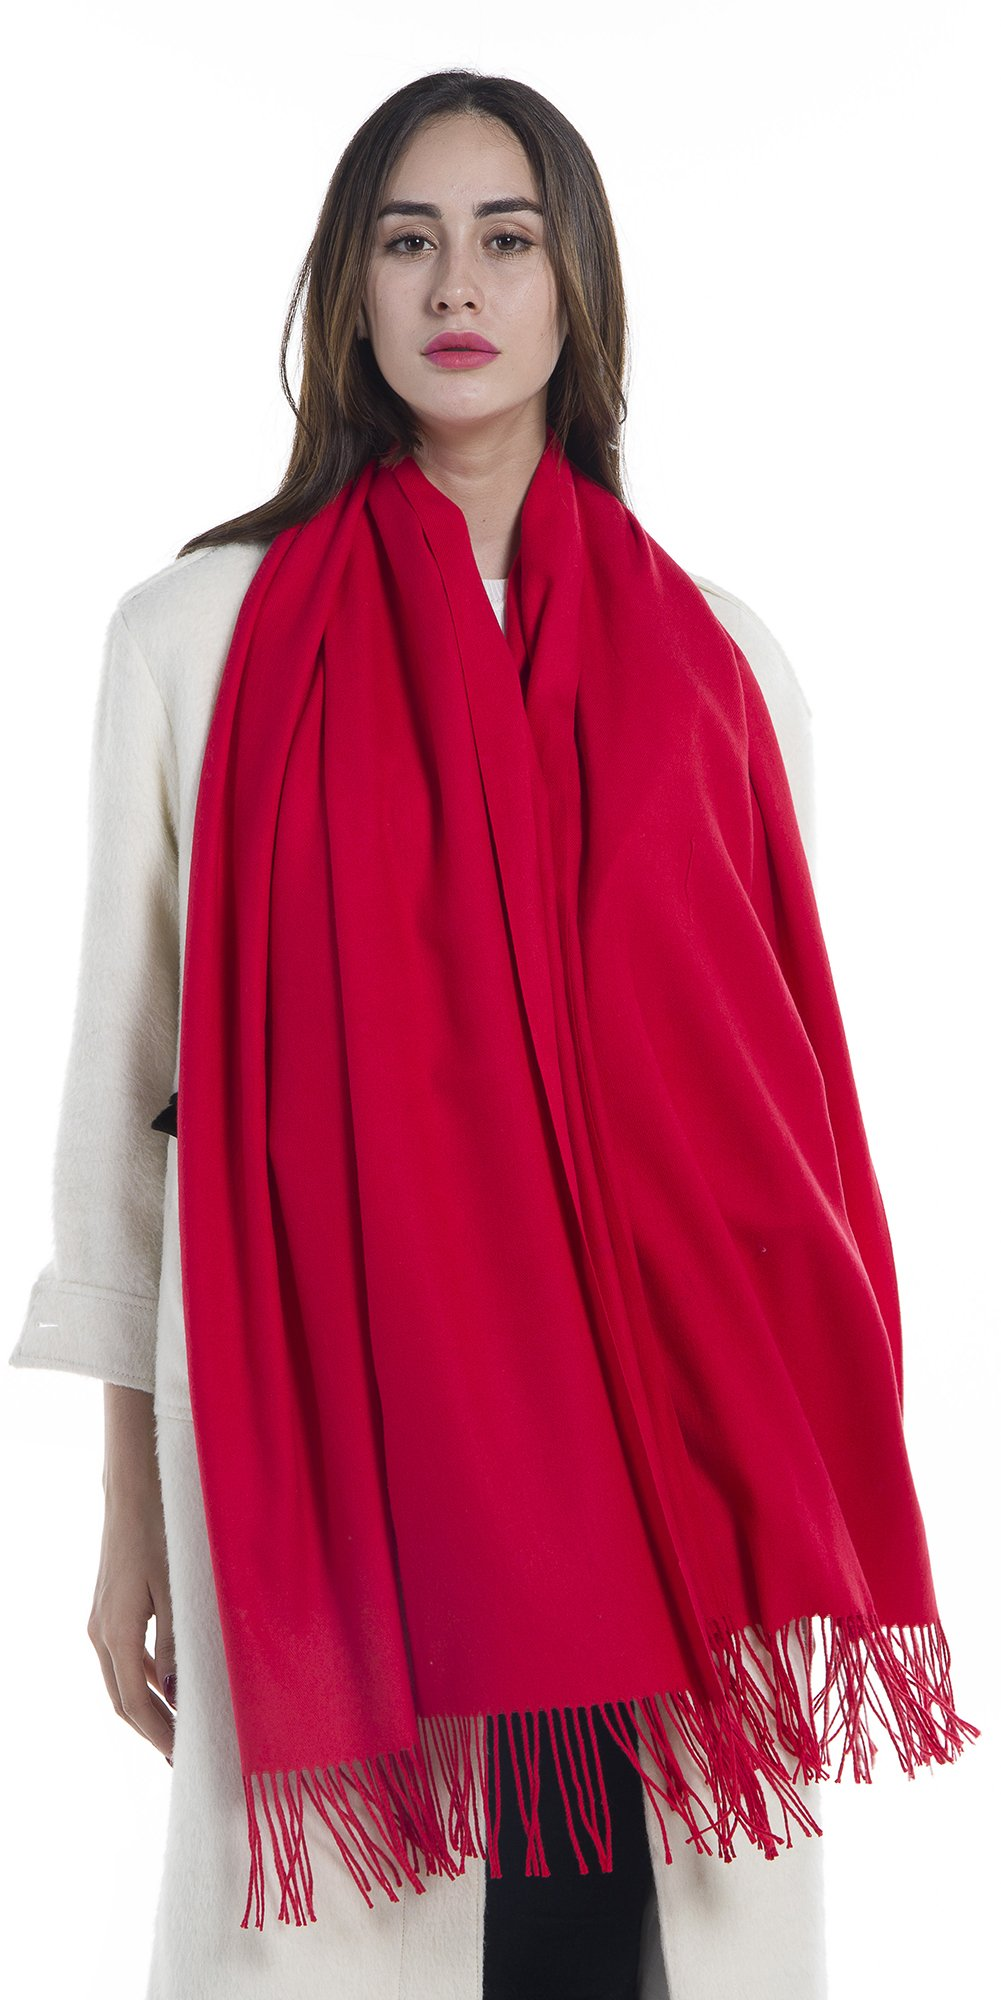 Niaiwei Women Scarf Plaid Blanket Scarves Wraps Shawl winter Cashemere scarf (Red)